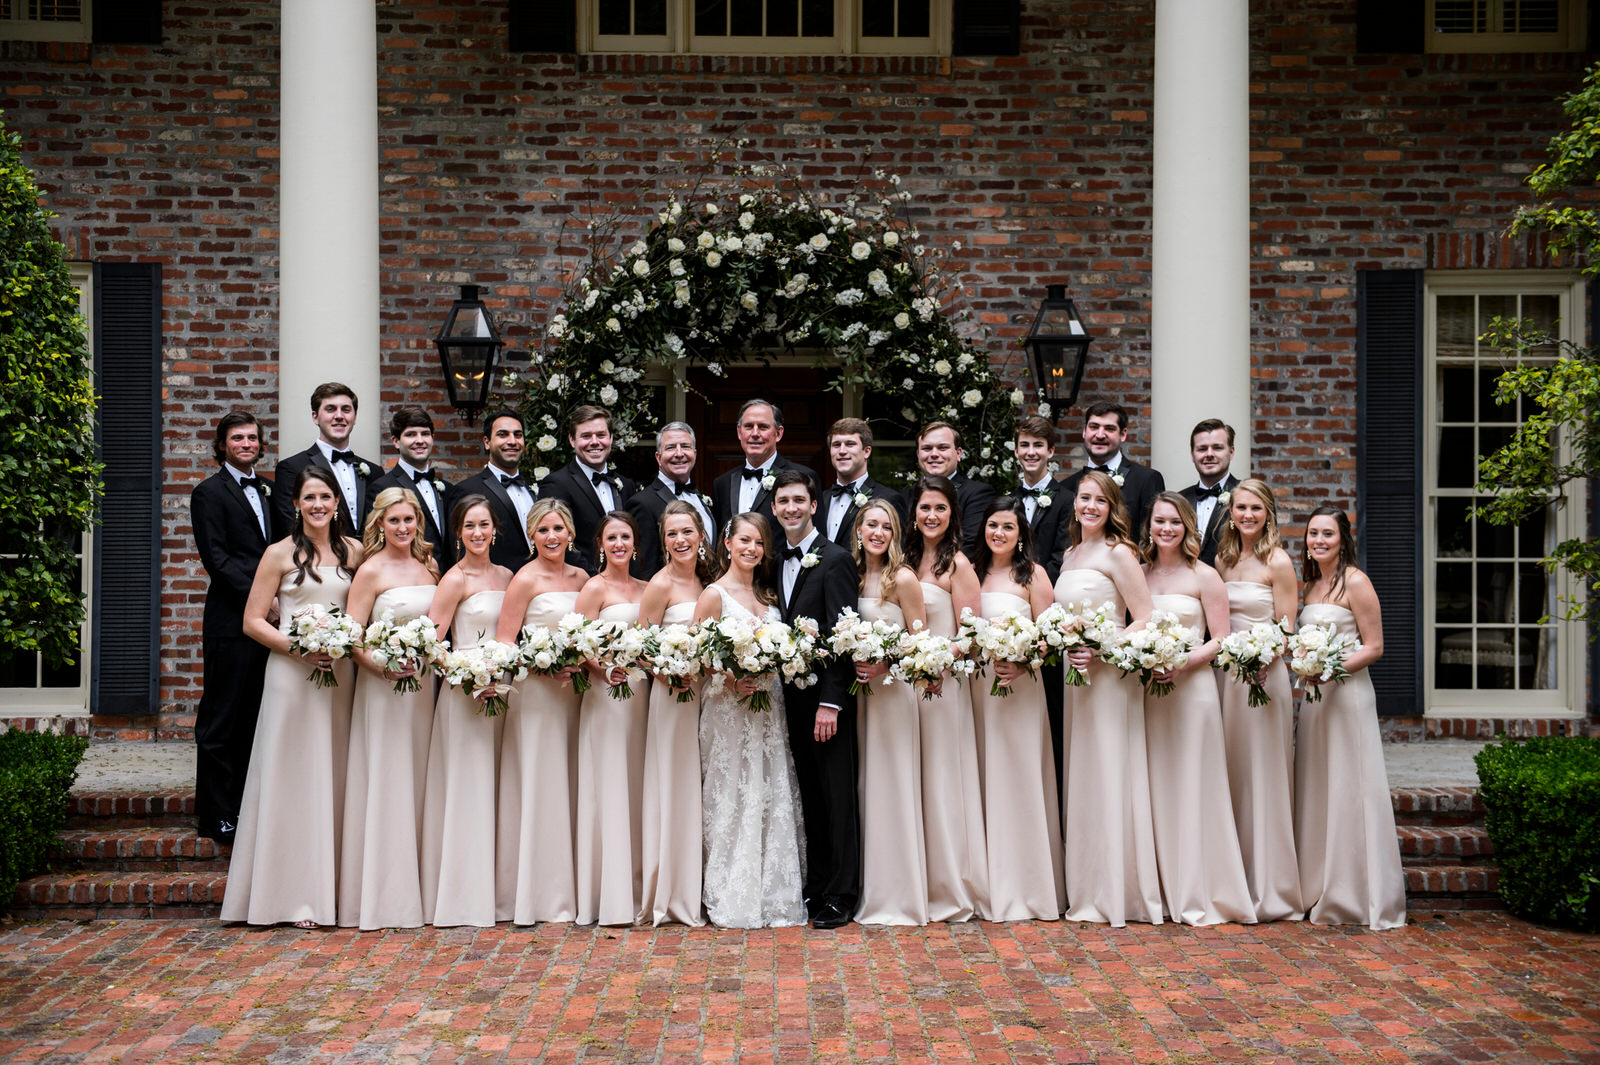 Bride with bridesmaids and groom. Blush, white and green bouquets in a lush garden style. In front on brides family home with a floral arch. Houston, Texas. Maxit Flower Design,  Alyssa Meeks  ,  Chris Bailey Photography